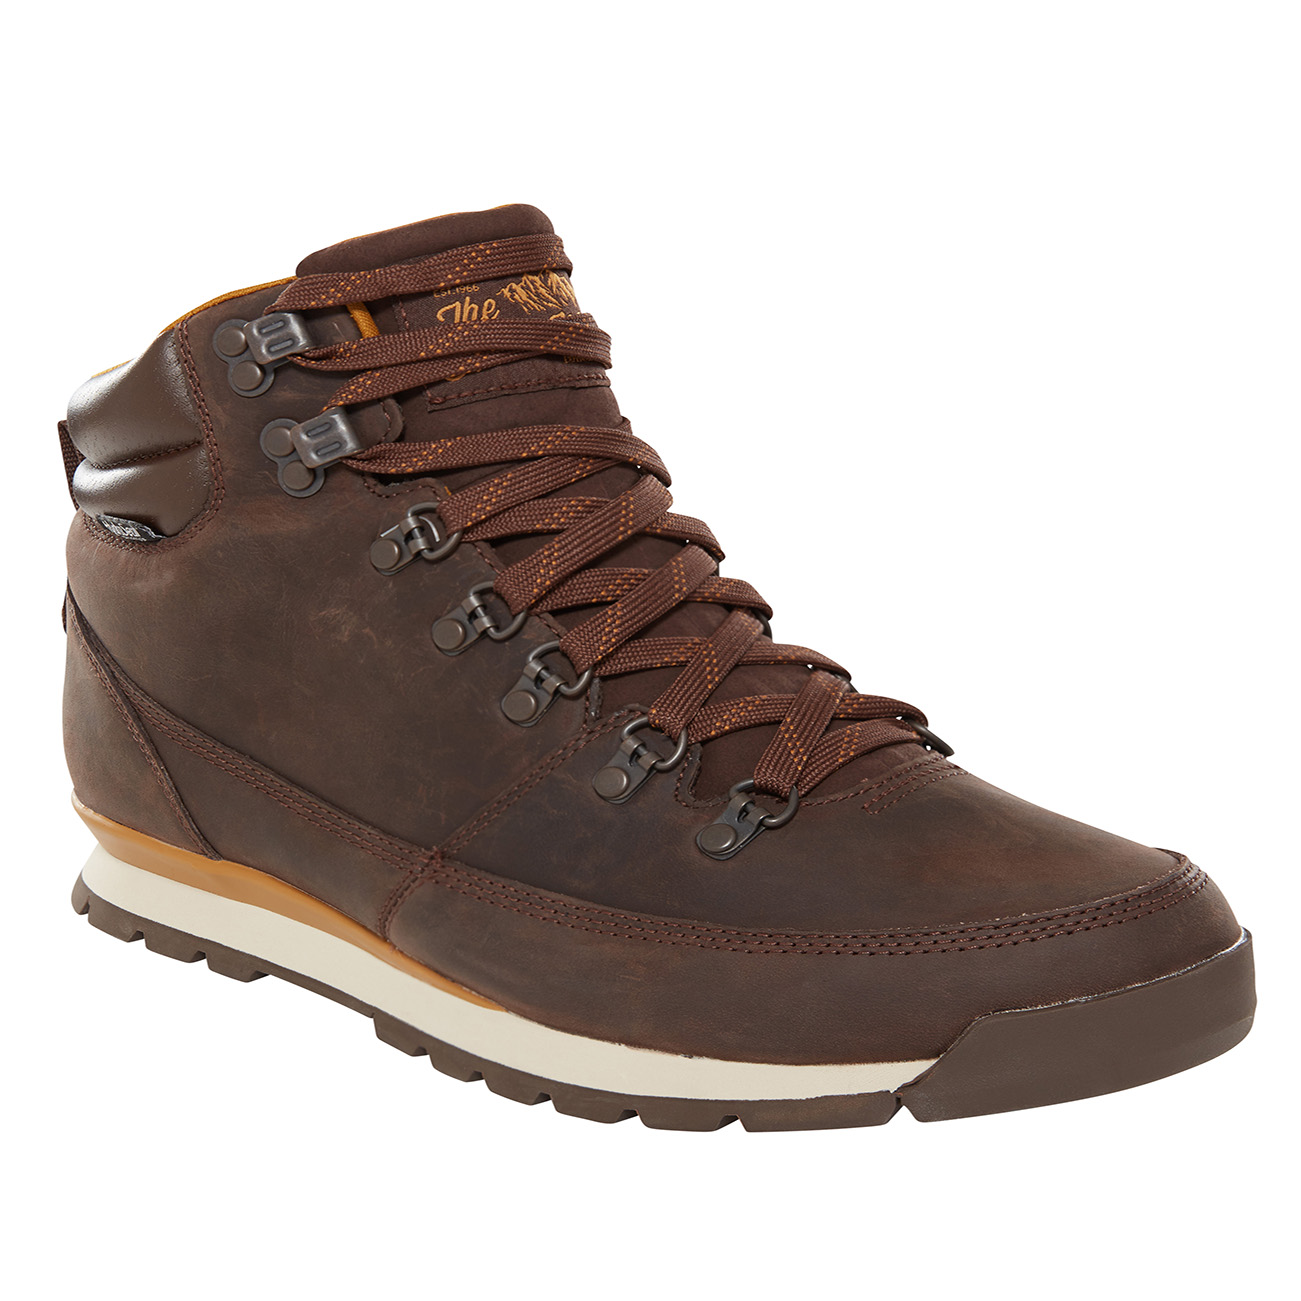 The North Face Back To Berkeley Redux Boots